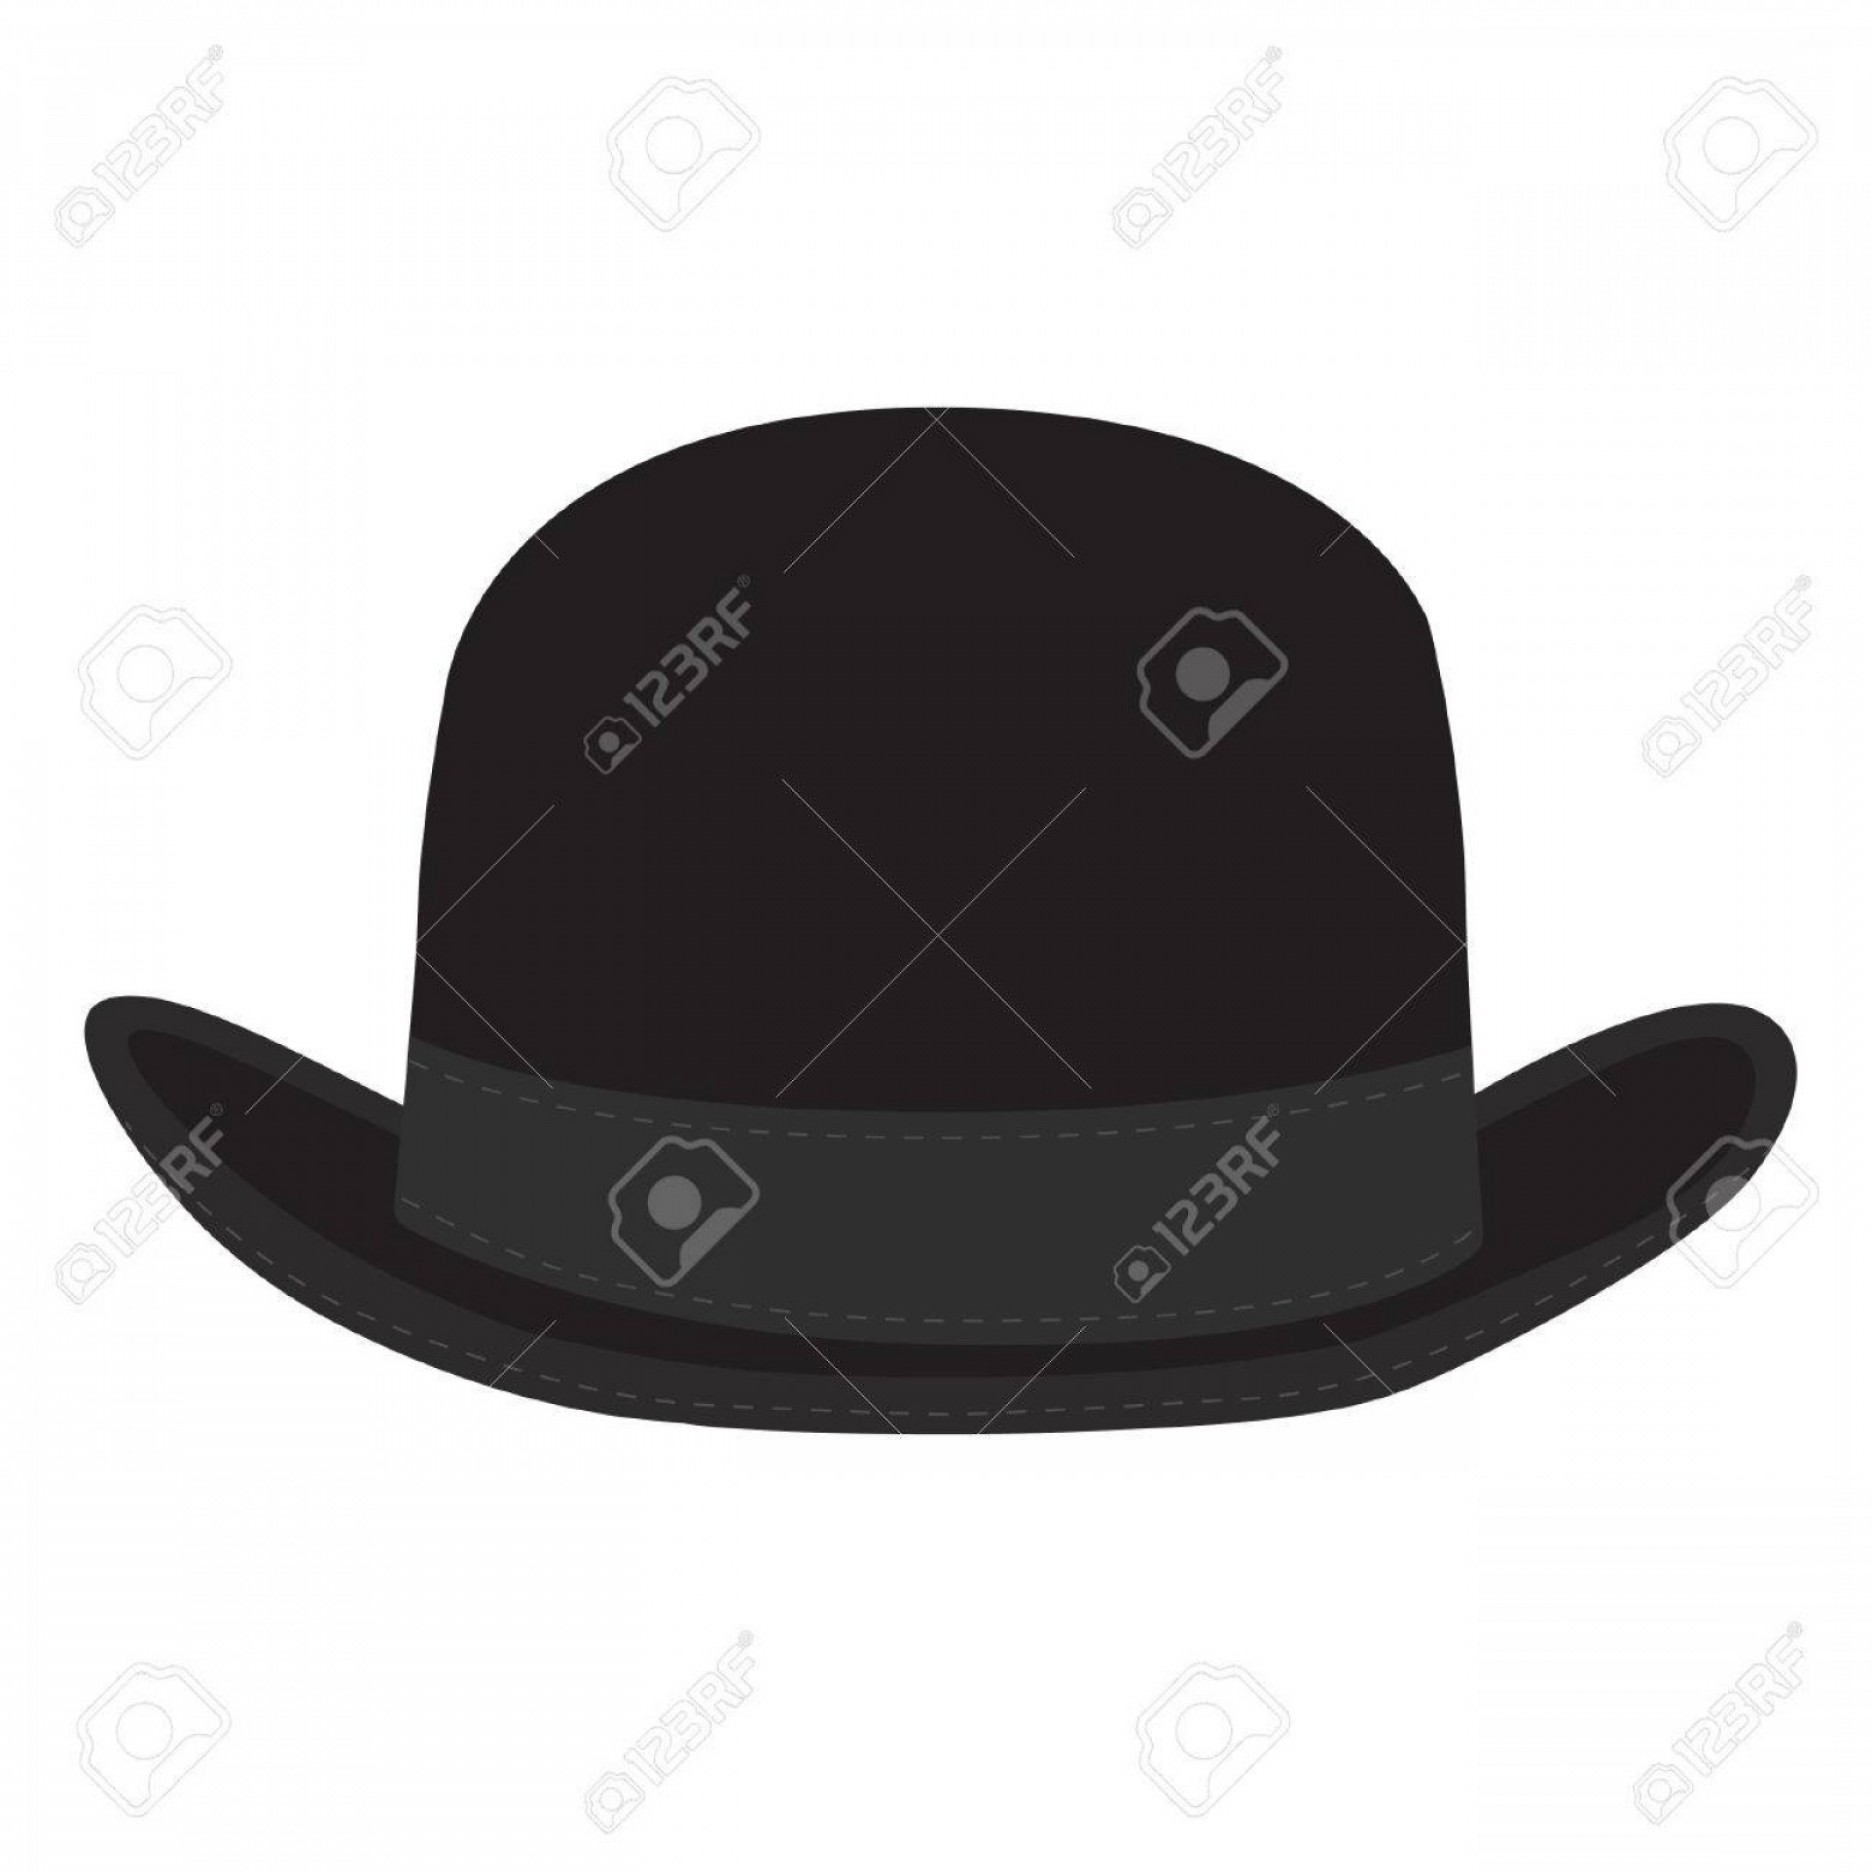 Bowler Hat Vector: Photostock Vector Black Derby Hat Vector Isolated Bowler Hat Black Fashion Gentleman Hat